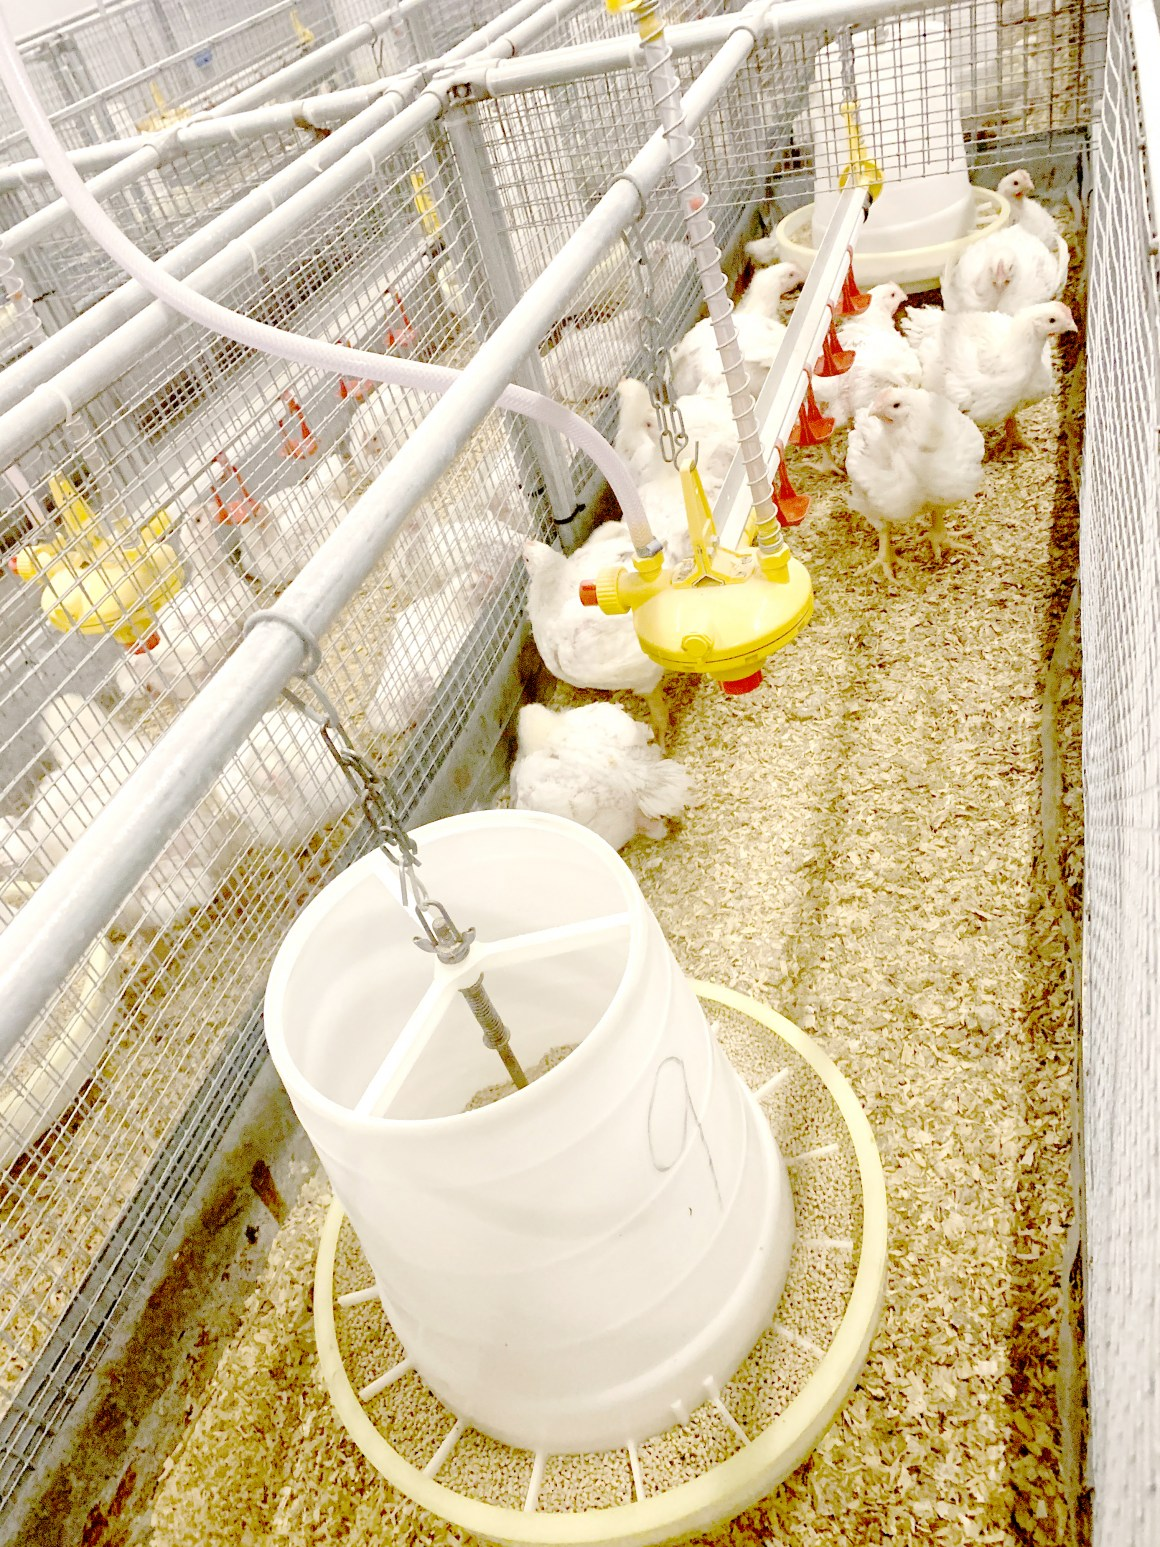 At 34 days the chickens were fully grown, and the preliminary results of the trial are promising